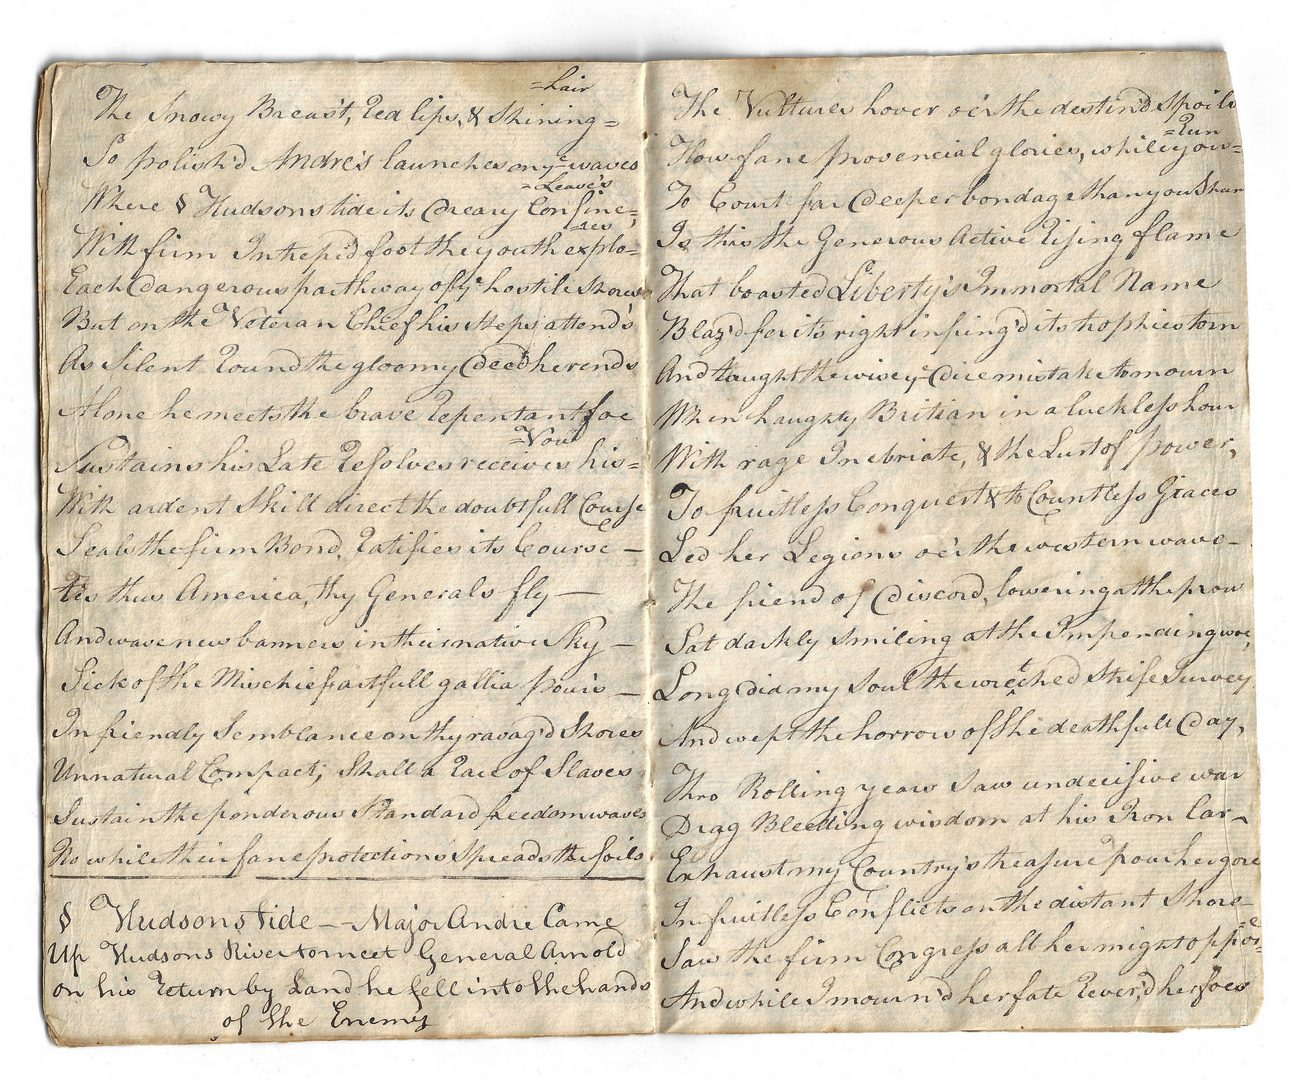 Lot 270: Monody on Major Andre by Miss Seward, handwritten